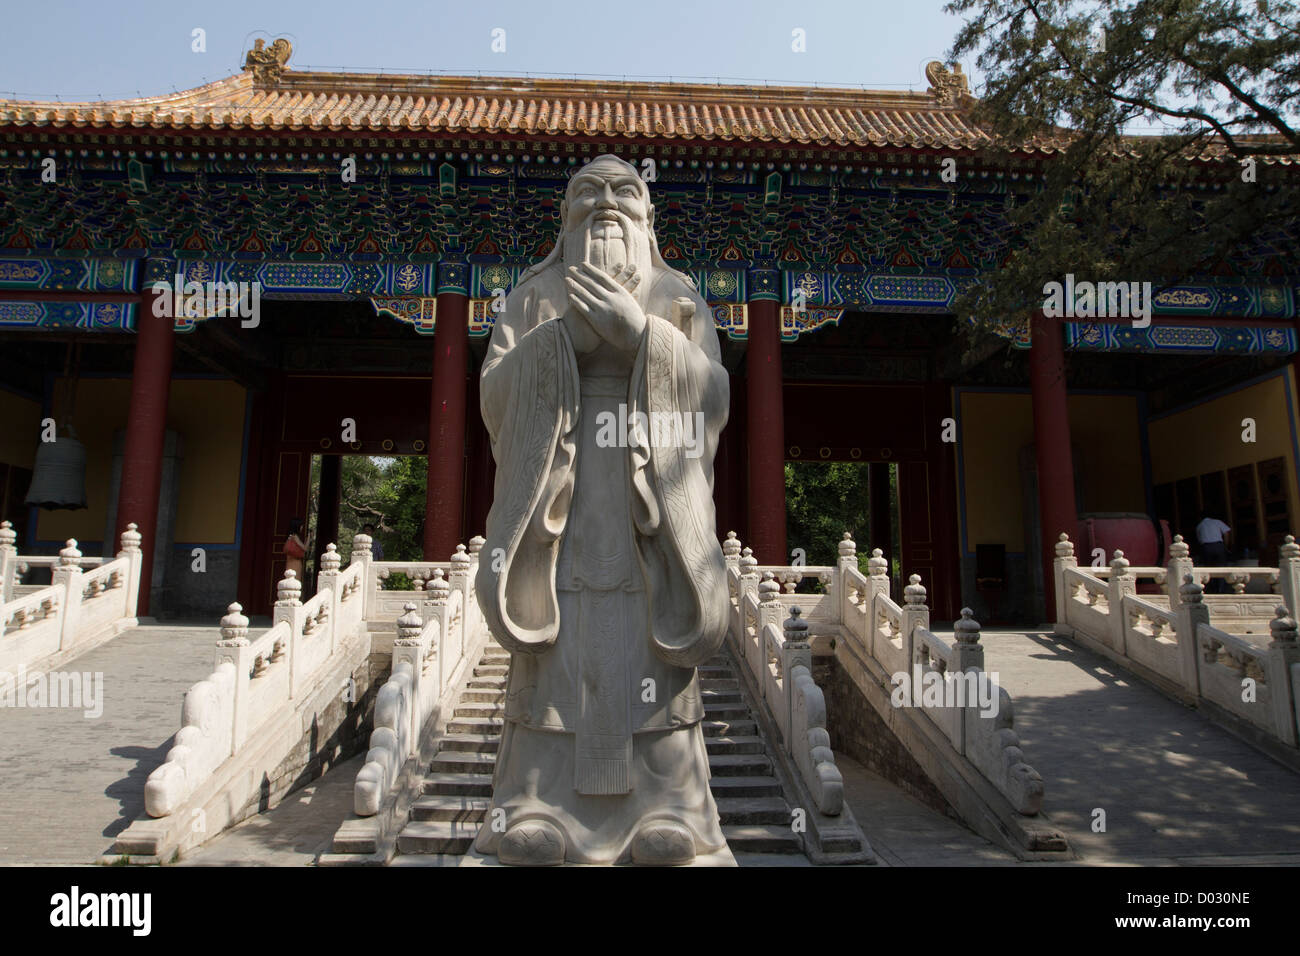 A statue of Confucius at the Confucius Temple and Guozijian (the